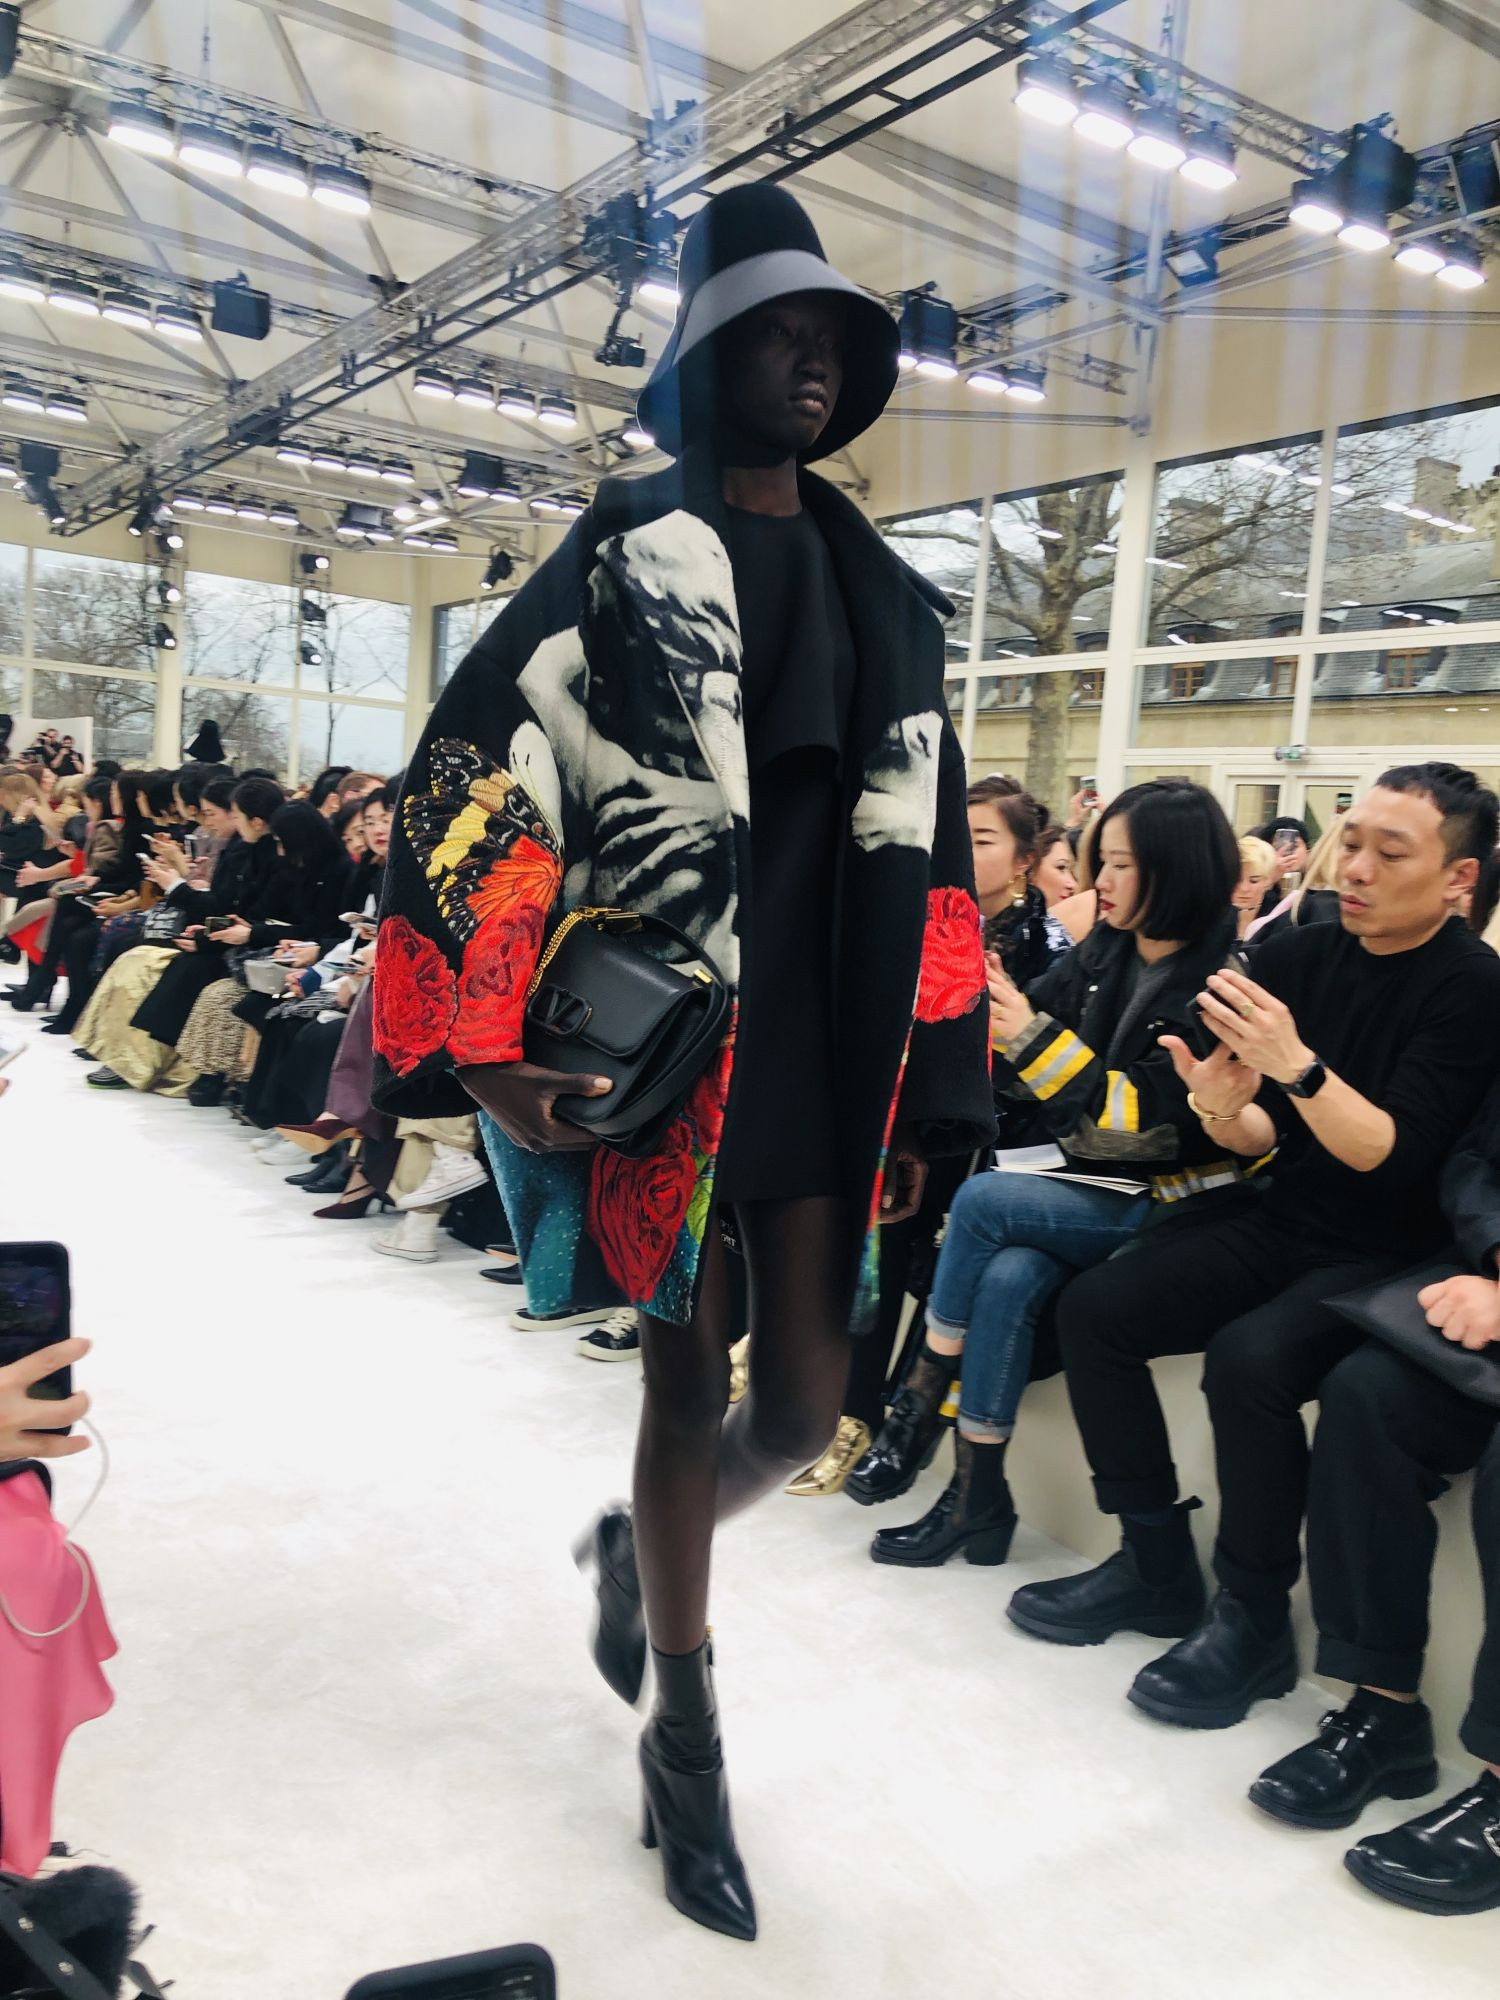 Paris Fashion Week Fall/Winter 2019: Day 6 Highlights